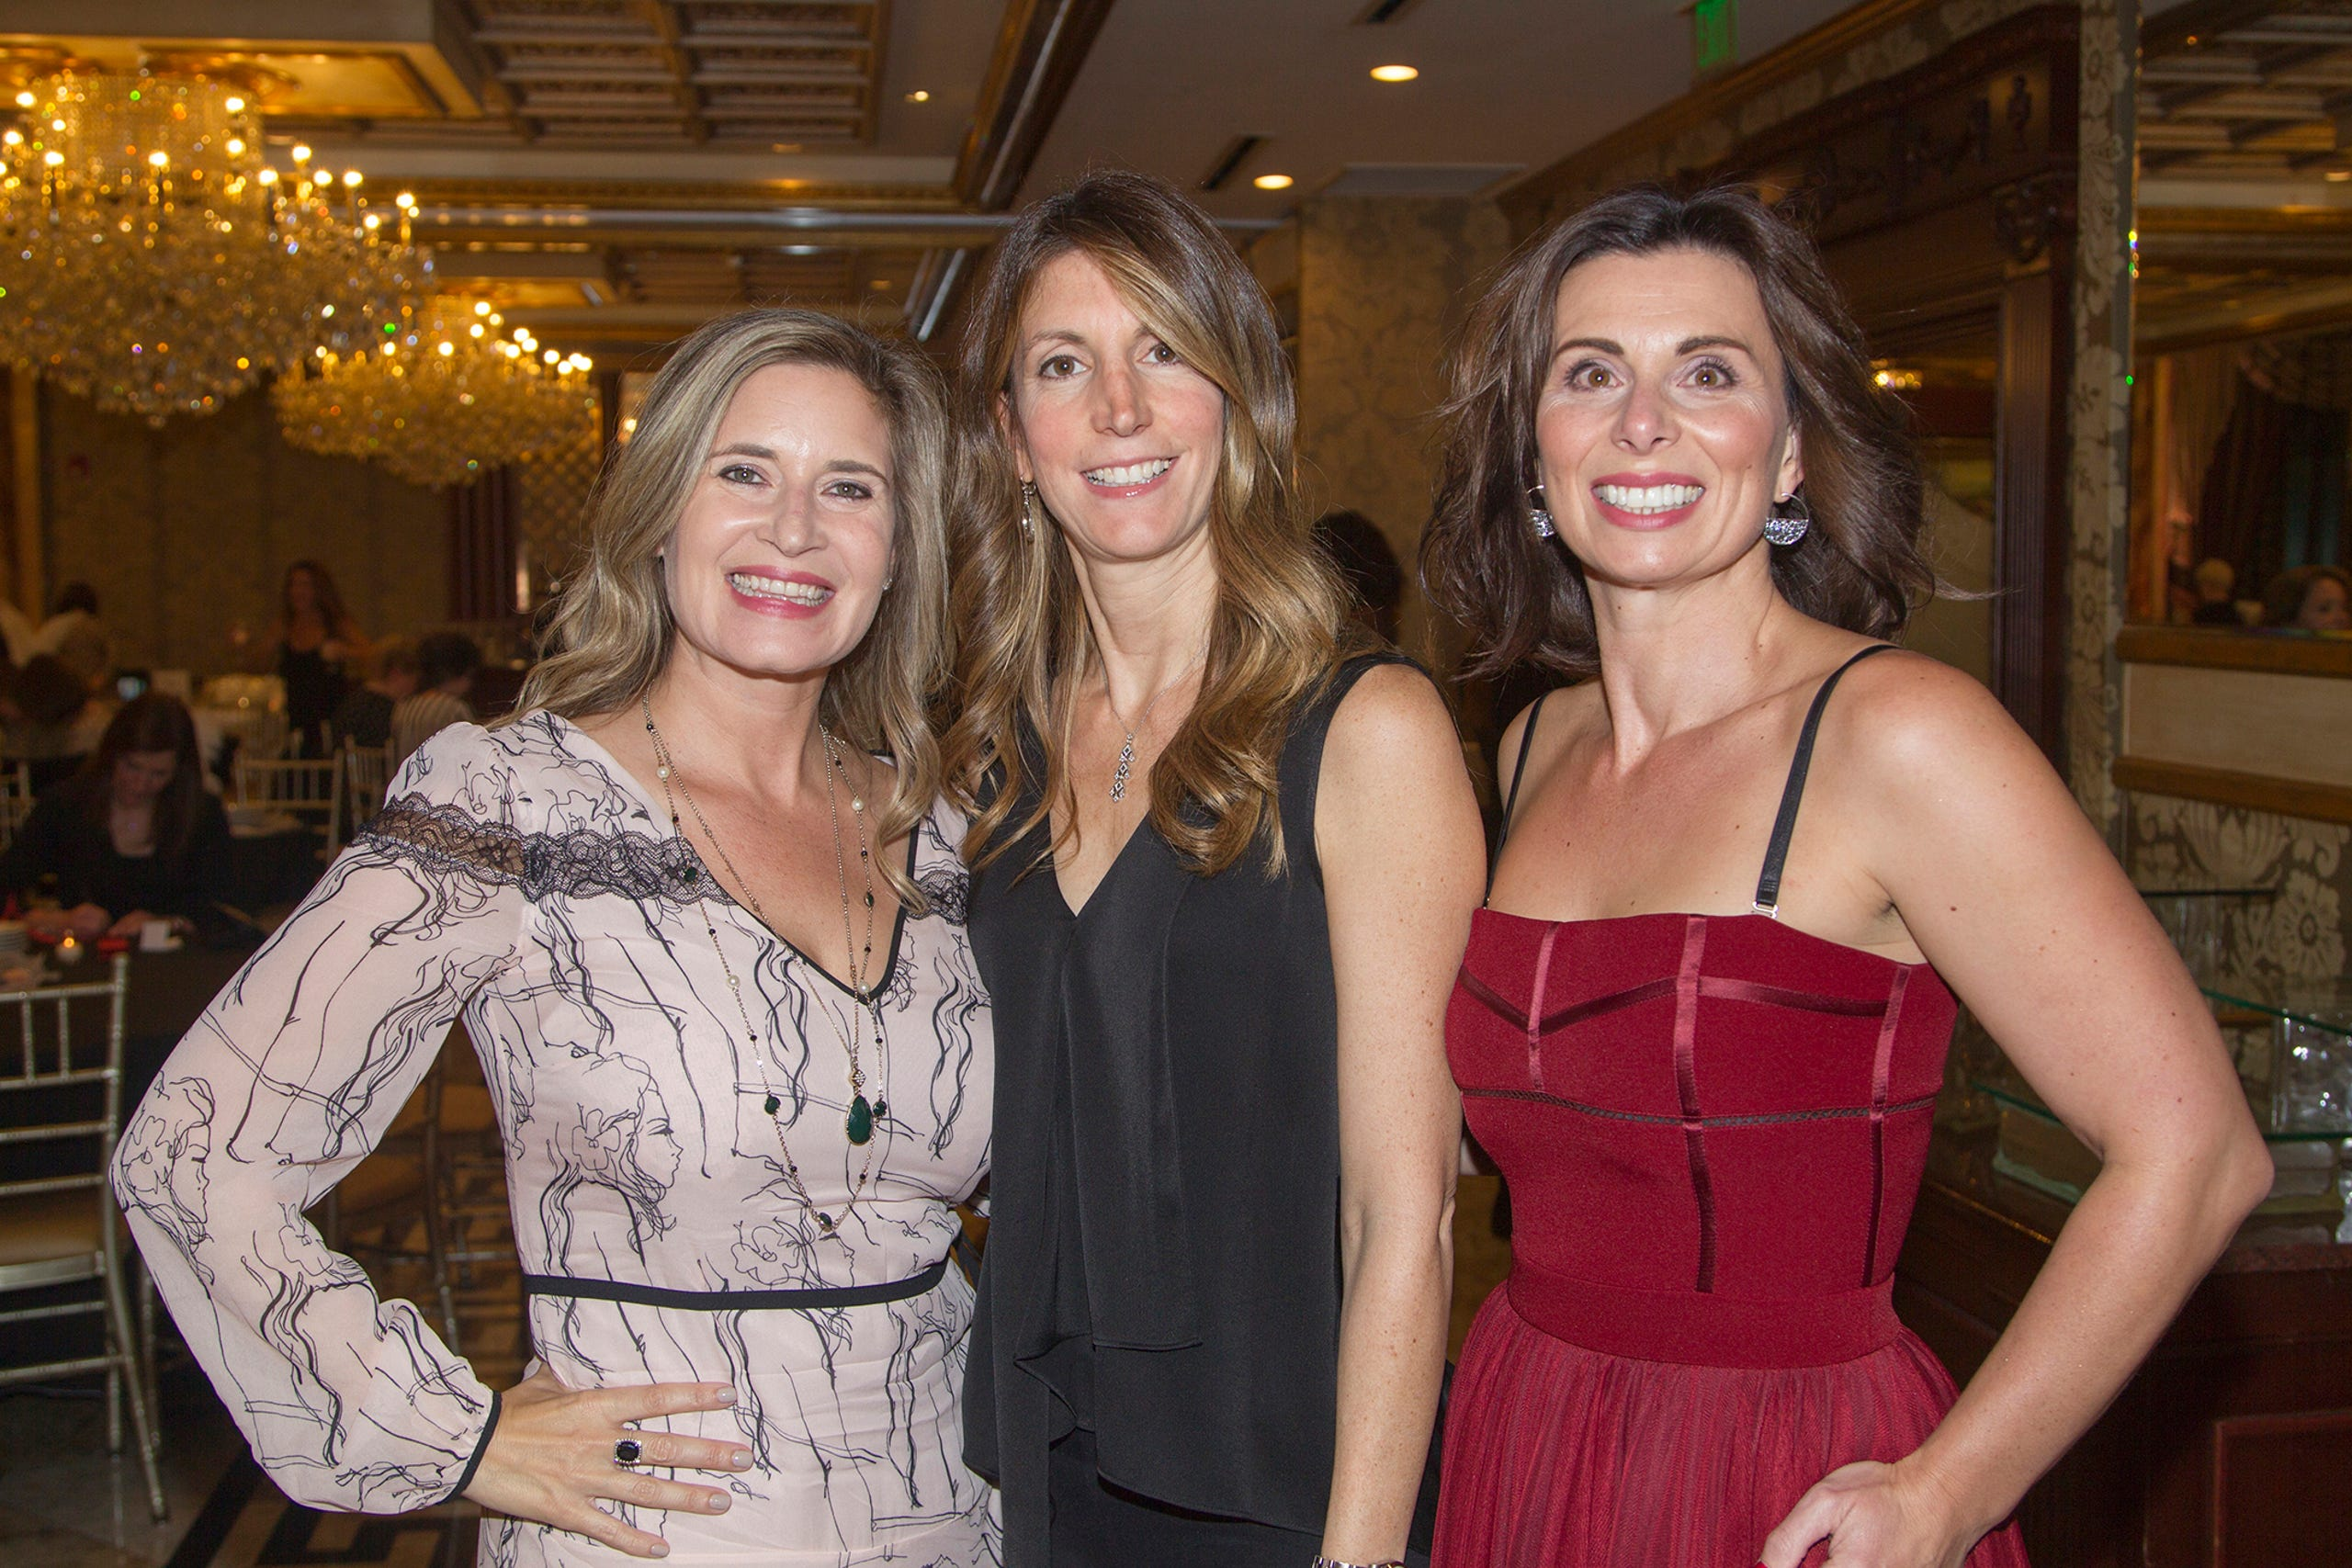 Amy Delucia saddle river day school's 2018 ladies night out at seasons